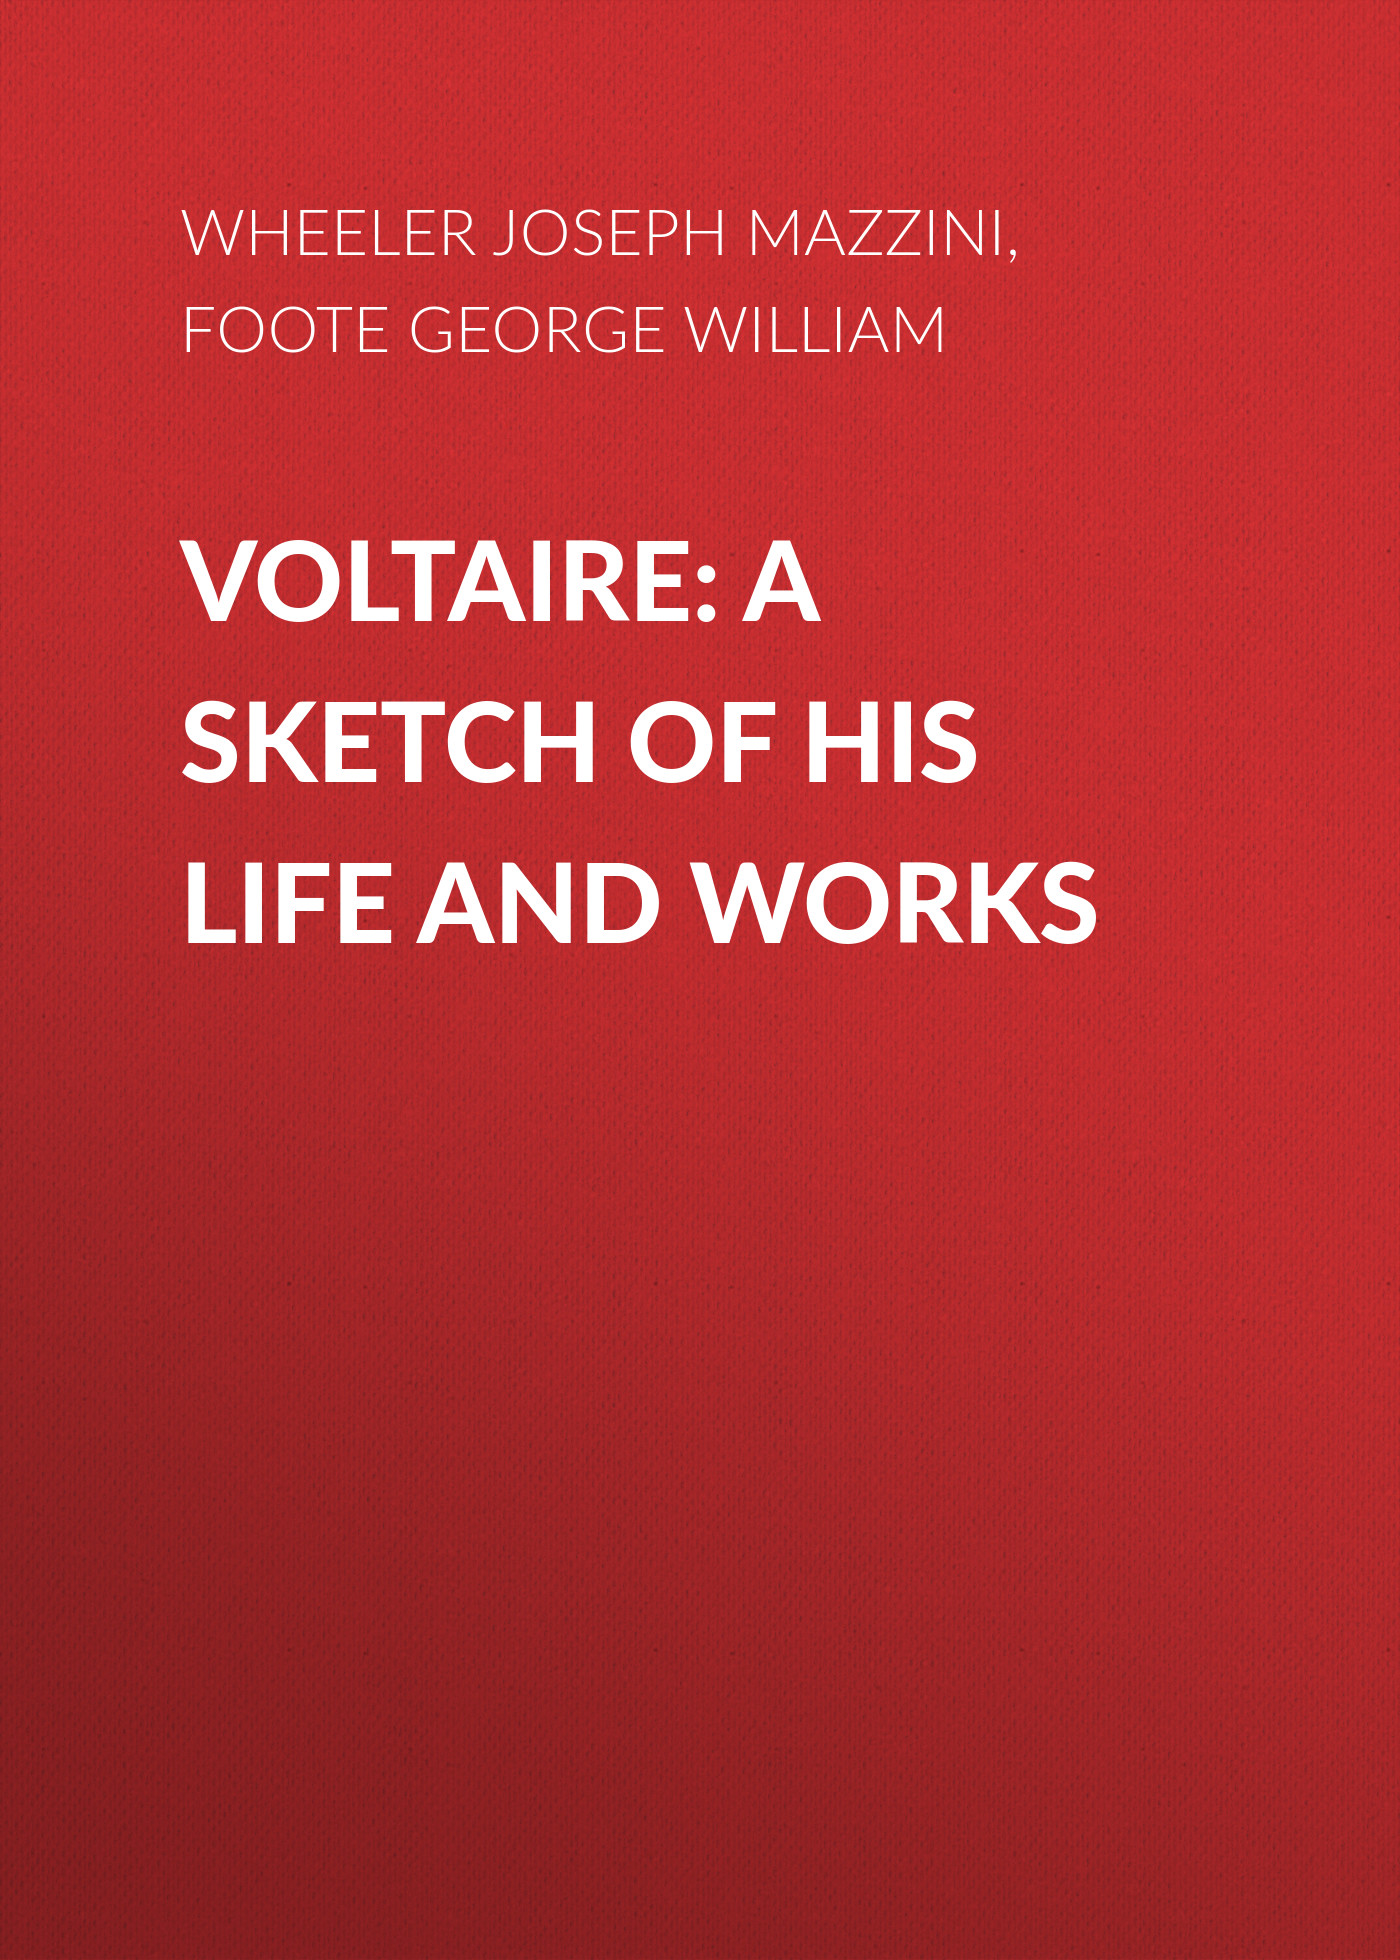 Foote George William Voltaire: A Sketch of His Life and Works philipp bouhler adolf hitler a short sketch of his life terramare series number one